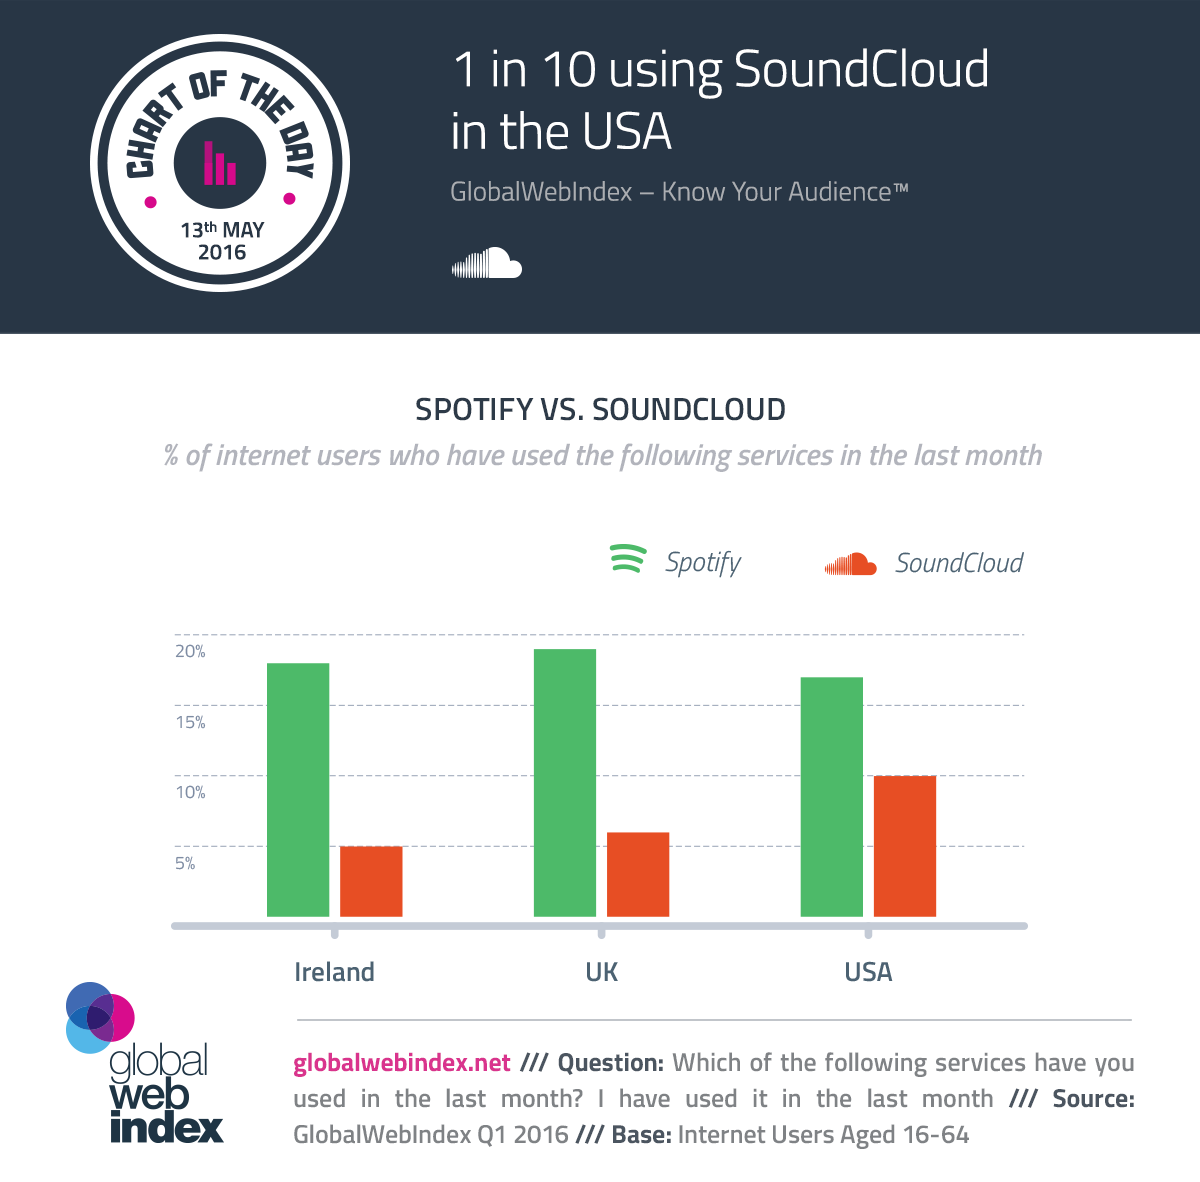 1 in 10 using SoundCloud in the USA